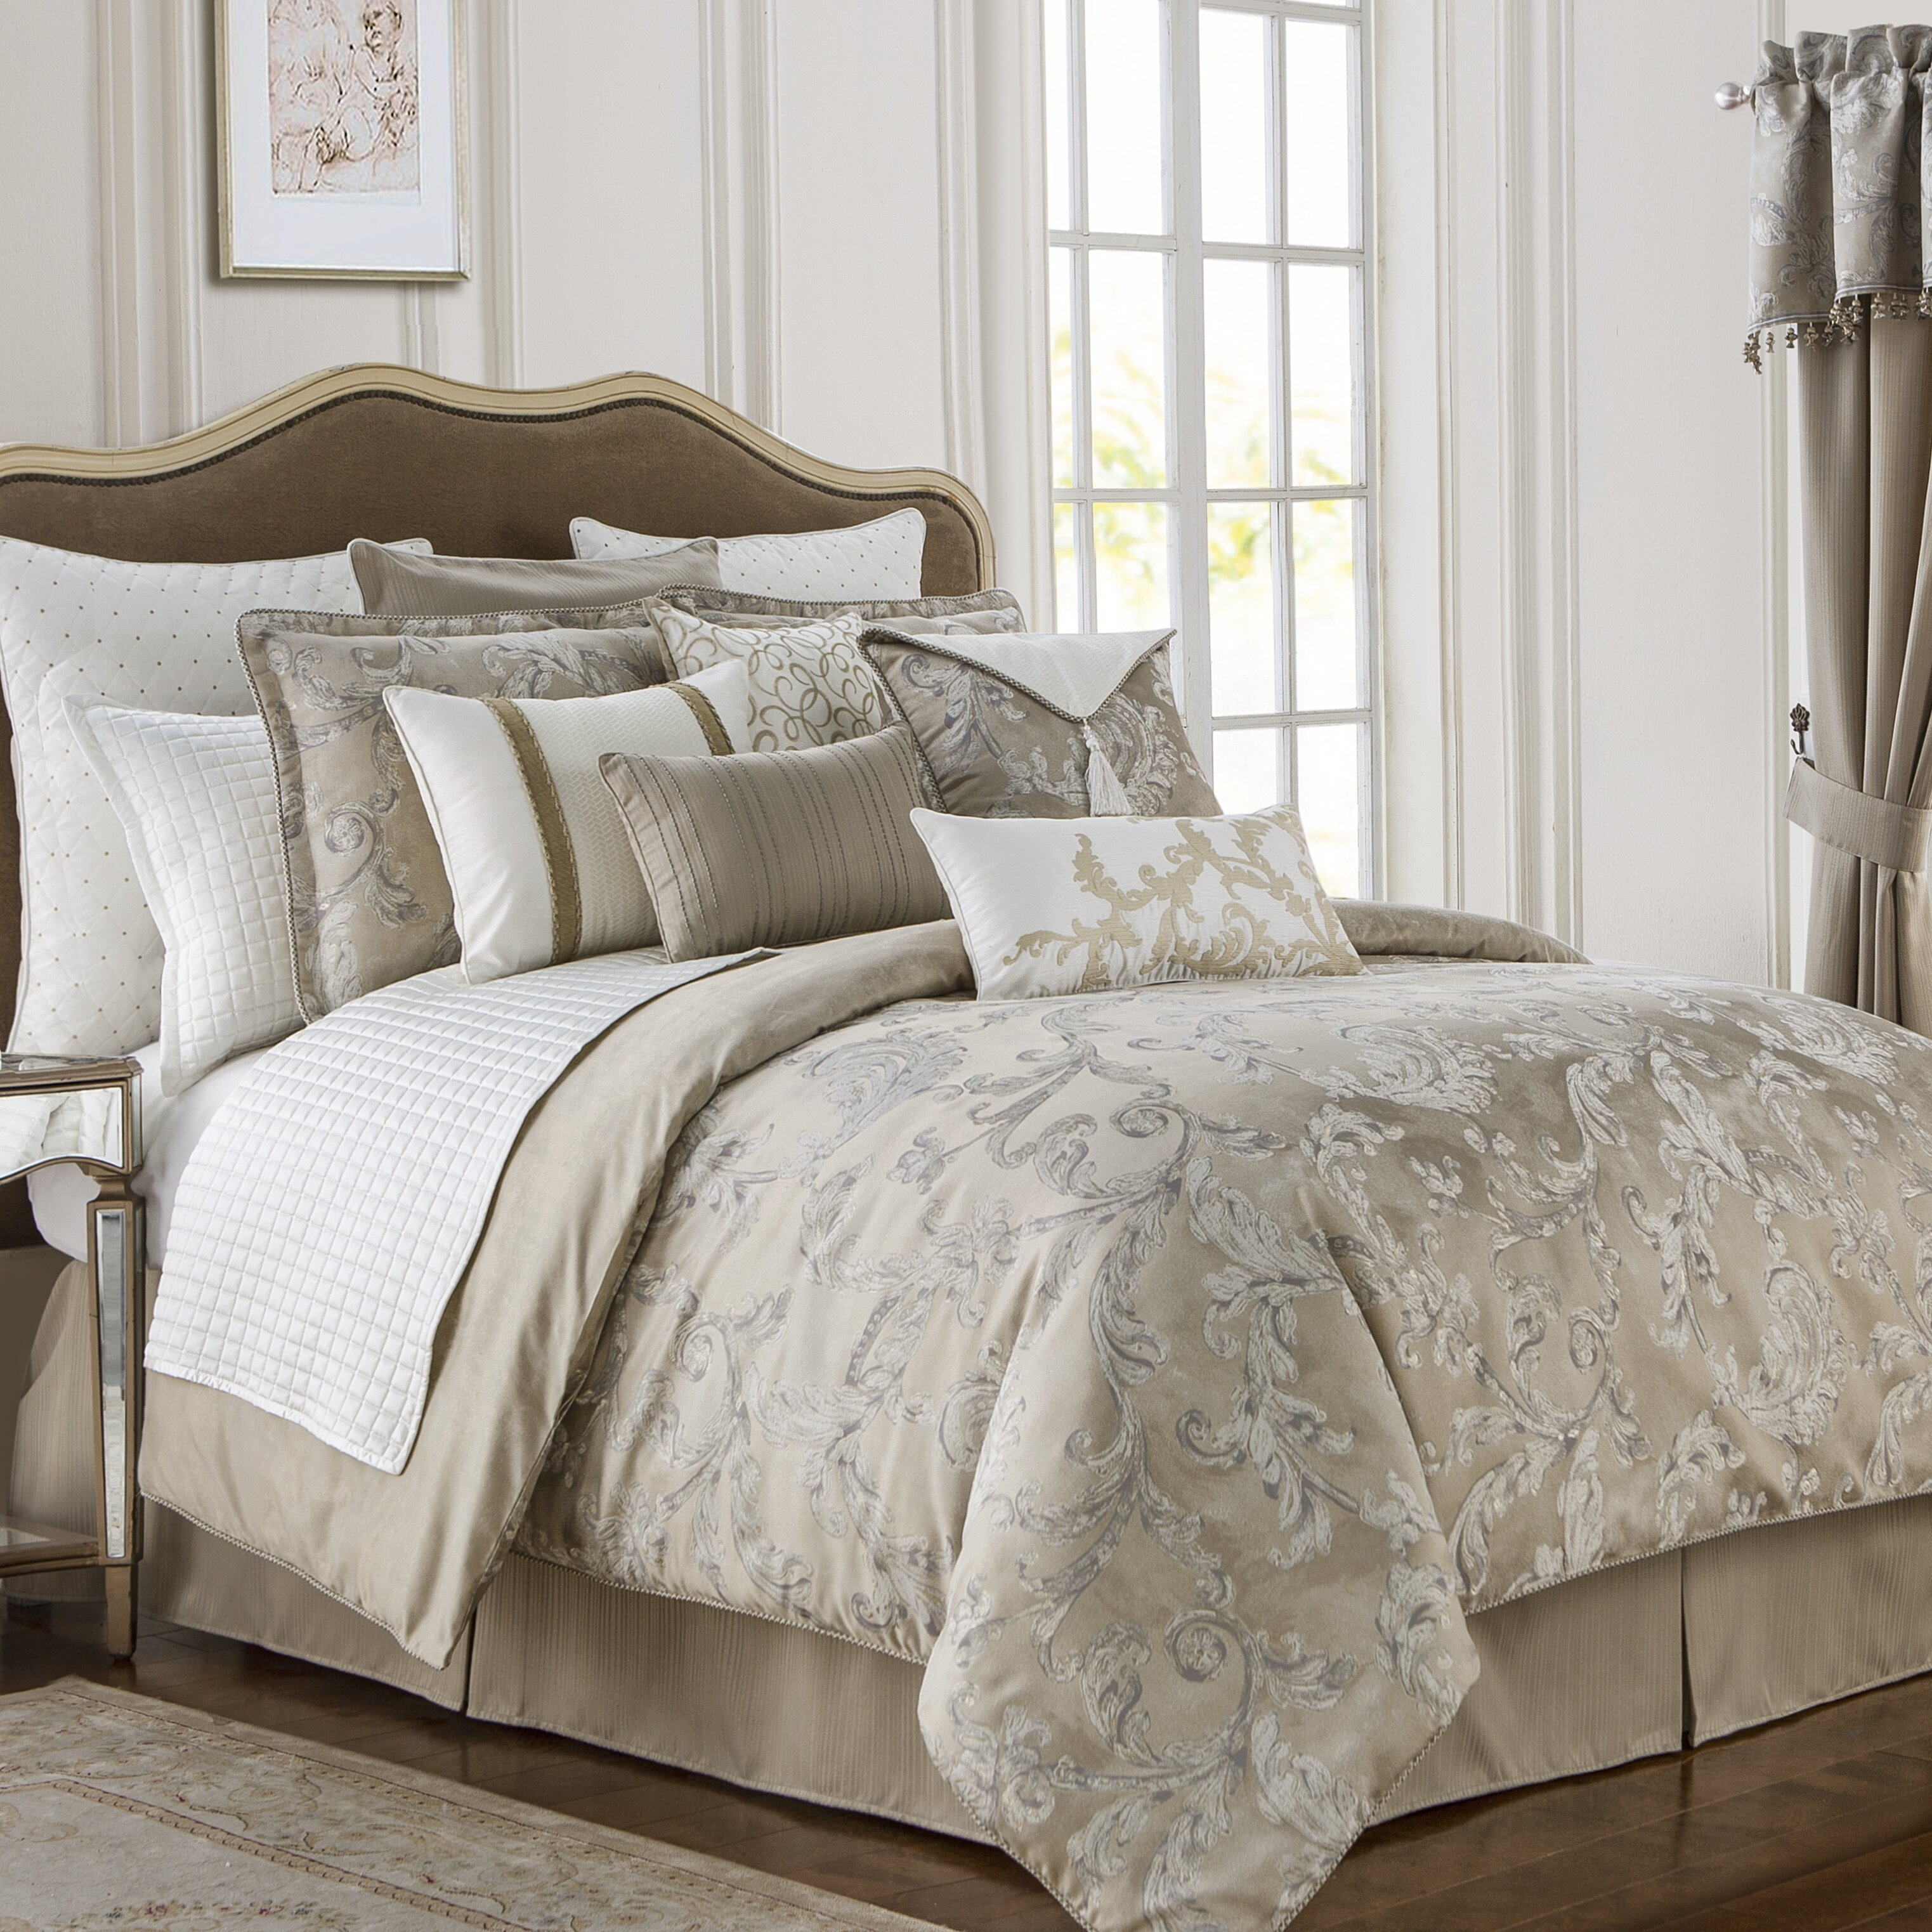 waterford in cover size hamilton bed comforter covers with remarkable king decoration set duvet